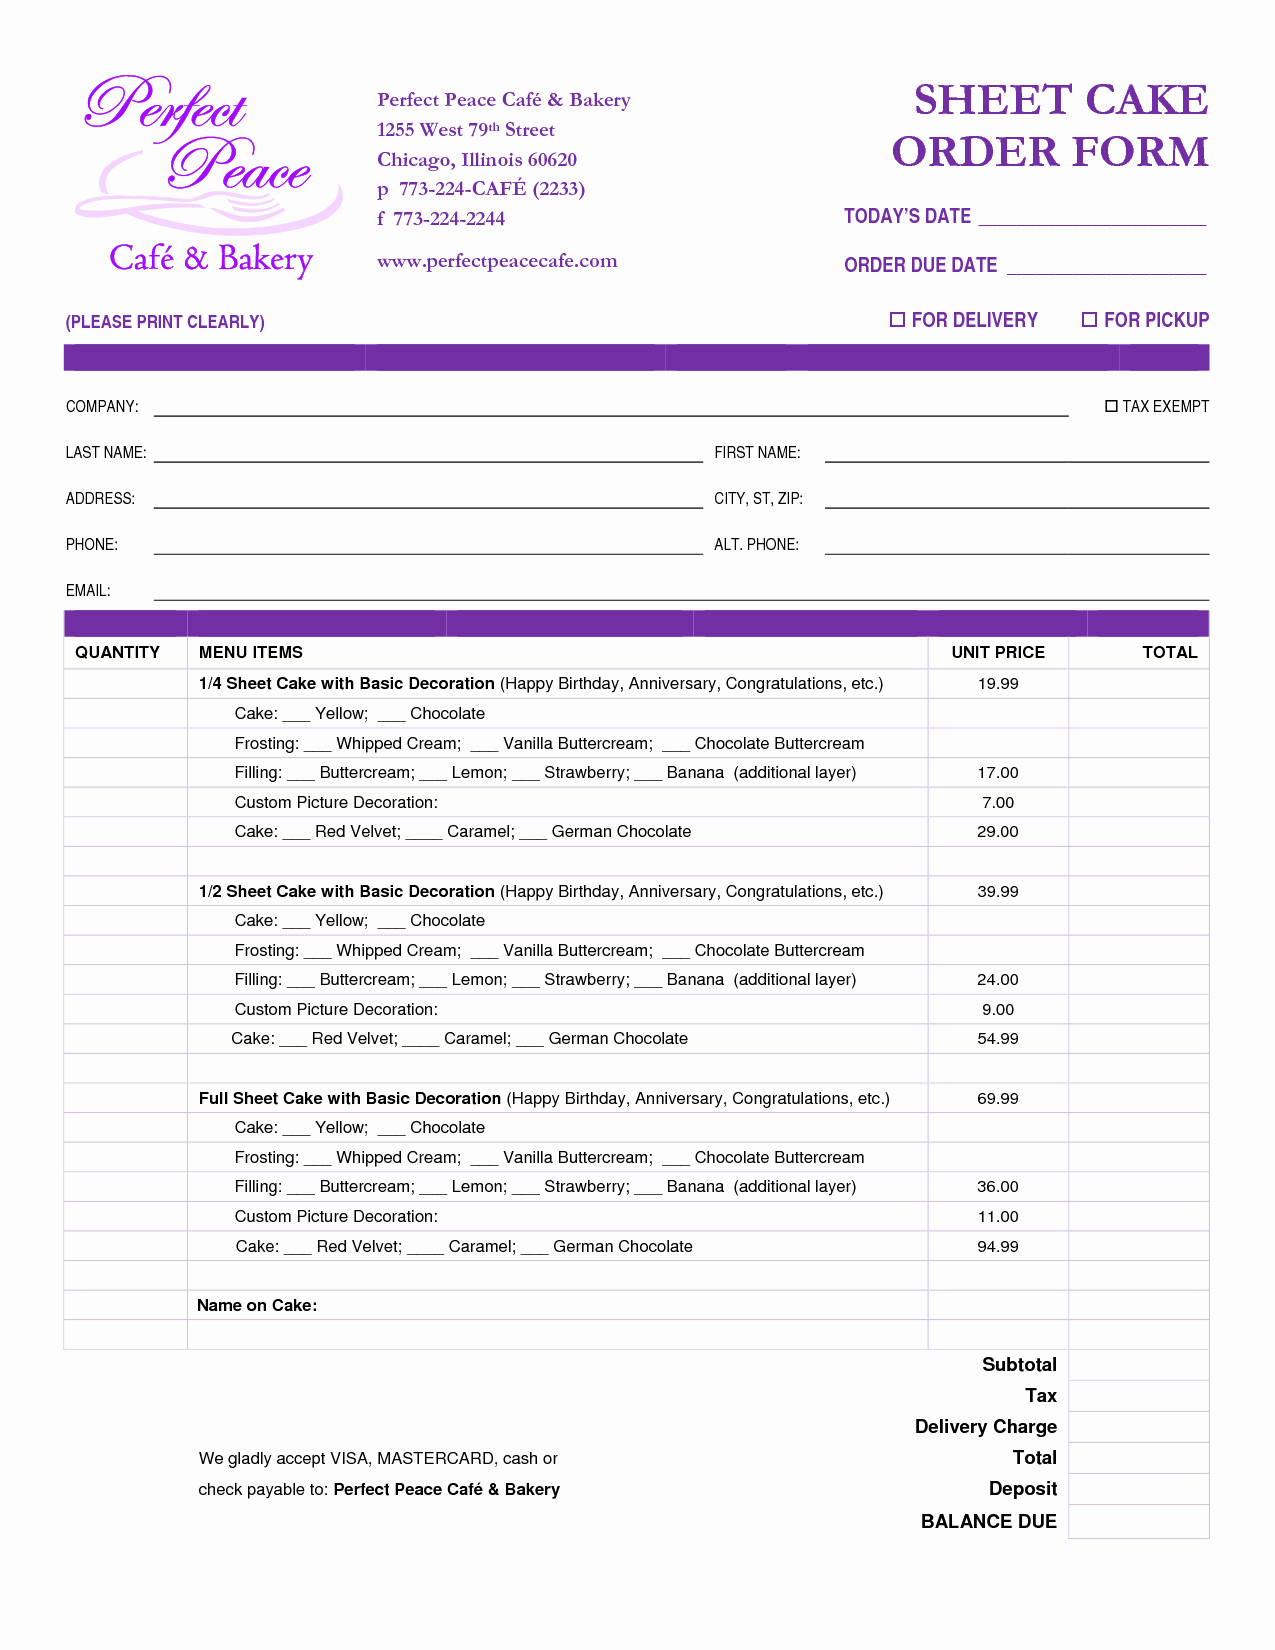 Cake order forms Printable Inspirational Cake order form Template Free Google Search